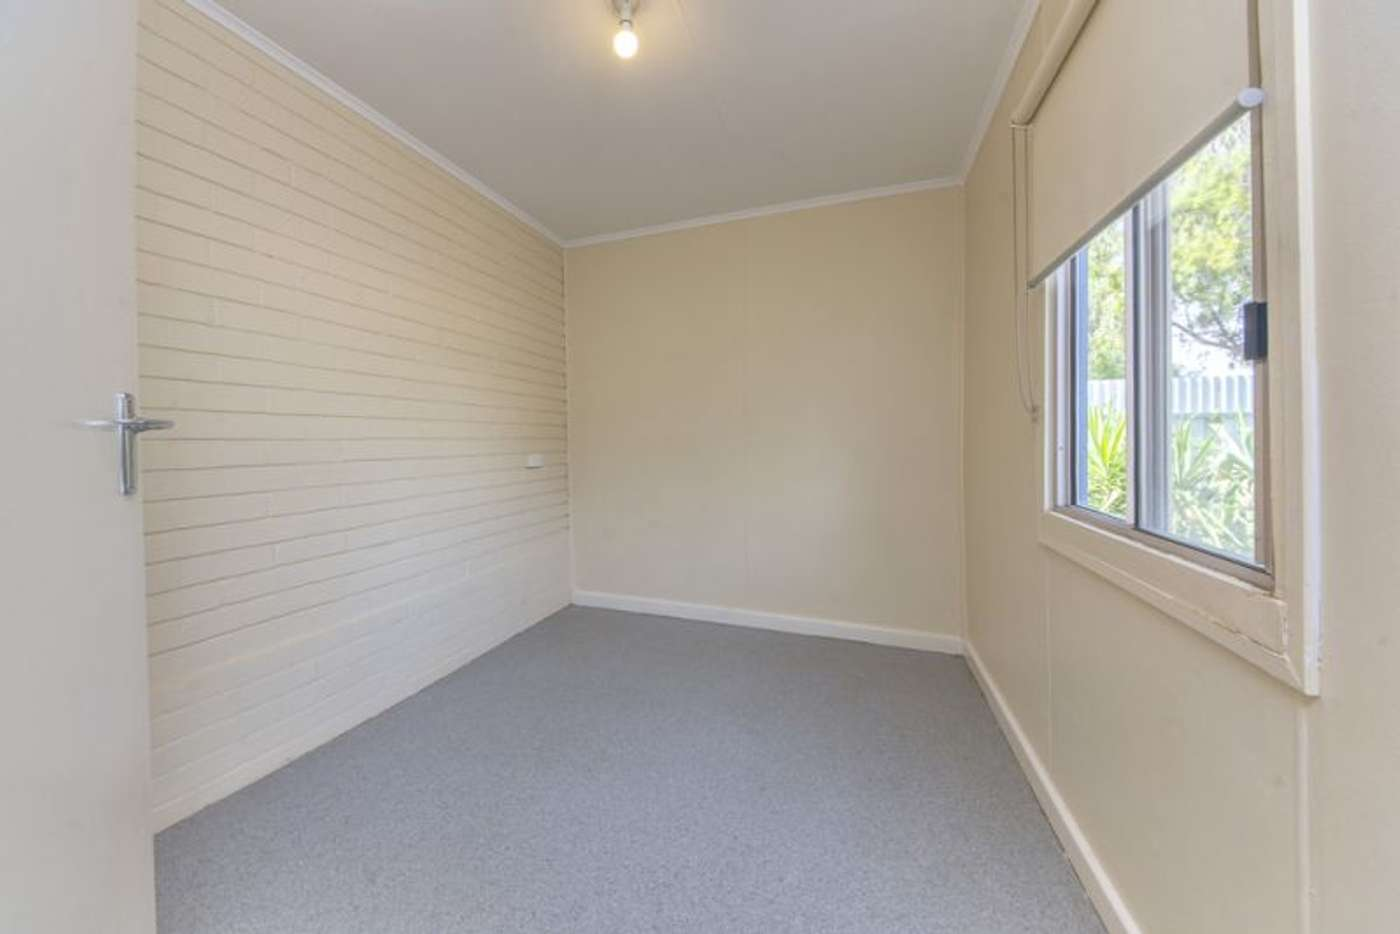 Sixth view of Homely other listing, 153 Torrens Road, Ridleyton SA 5008